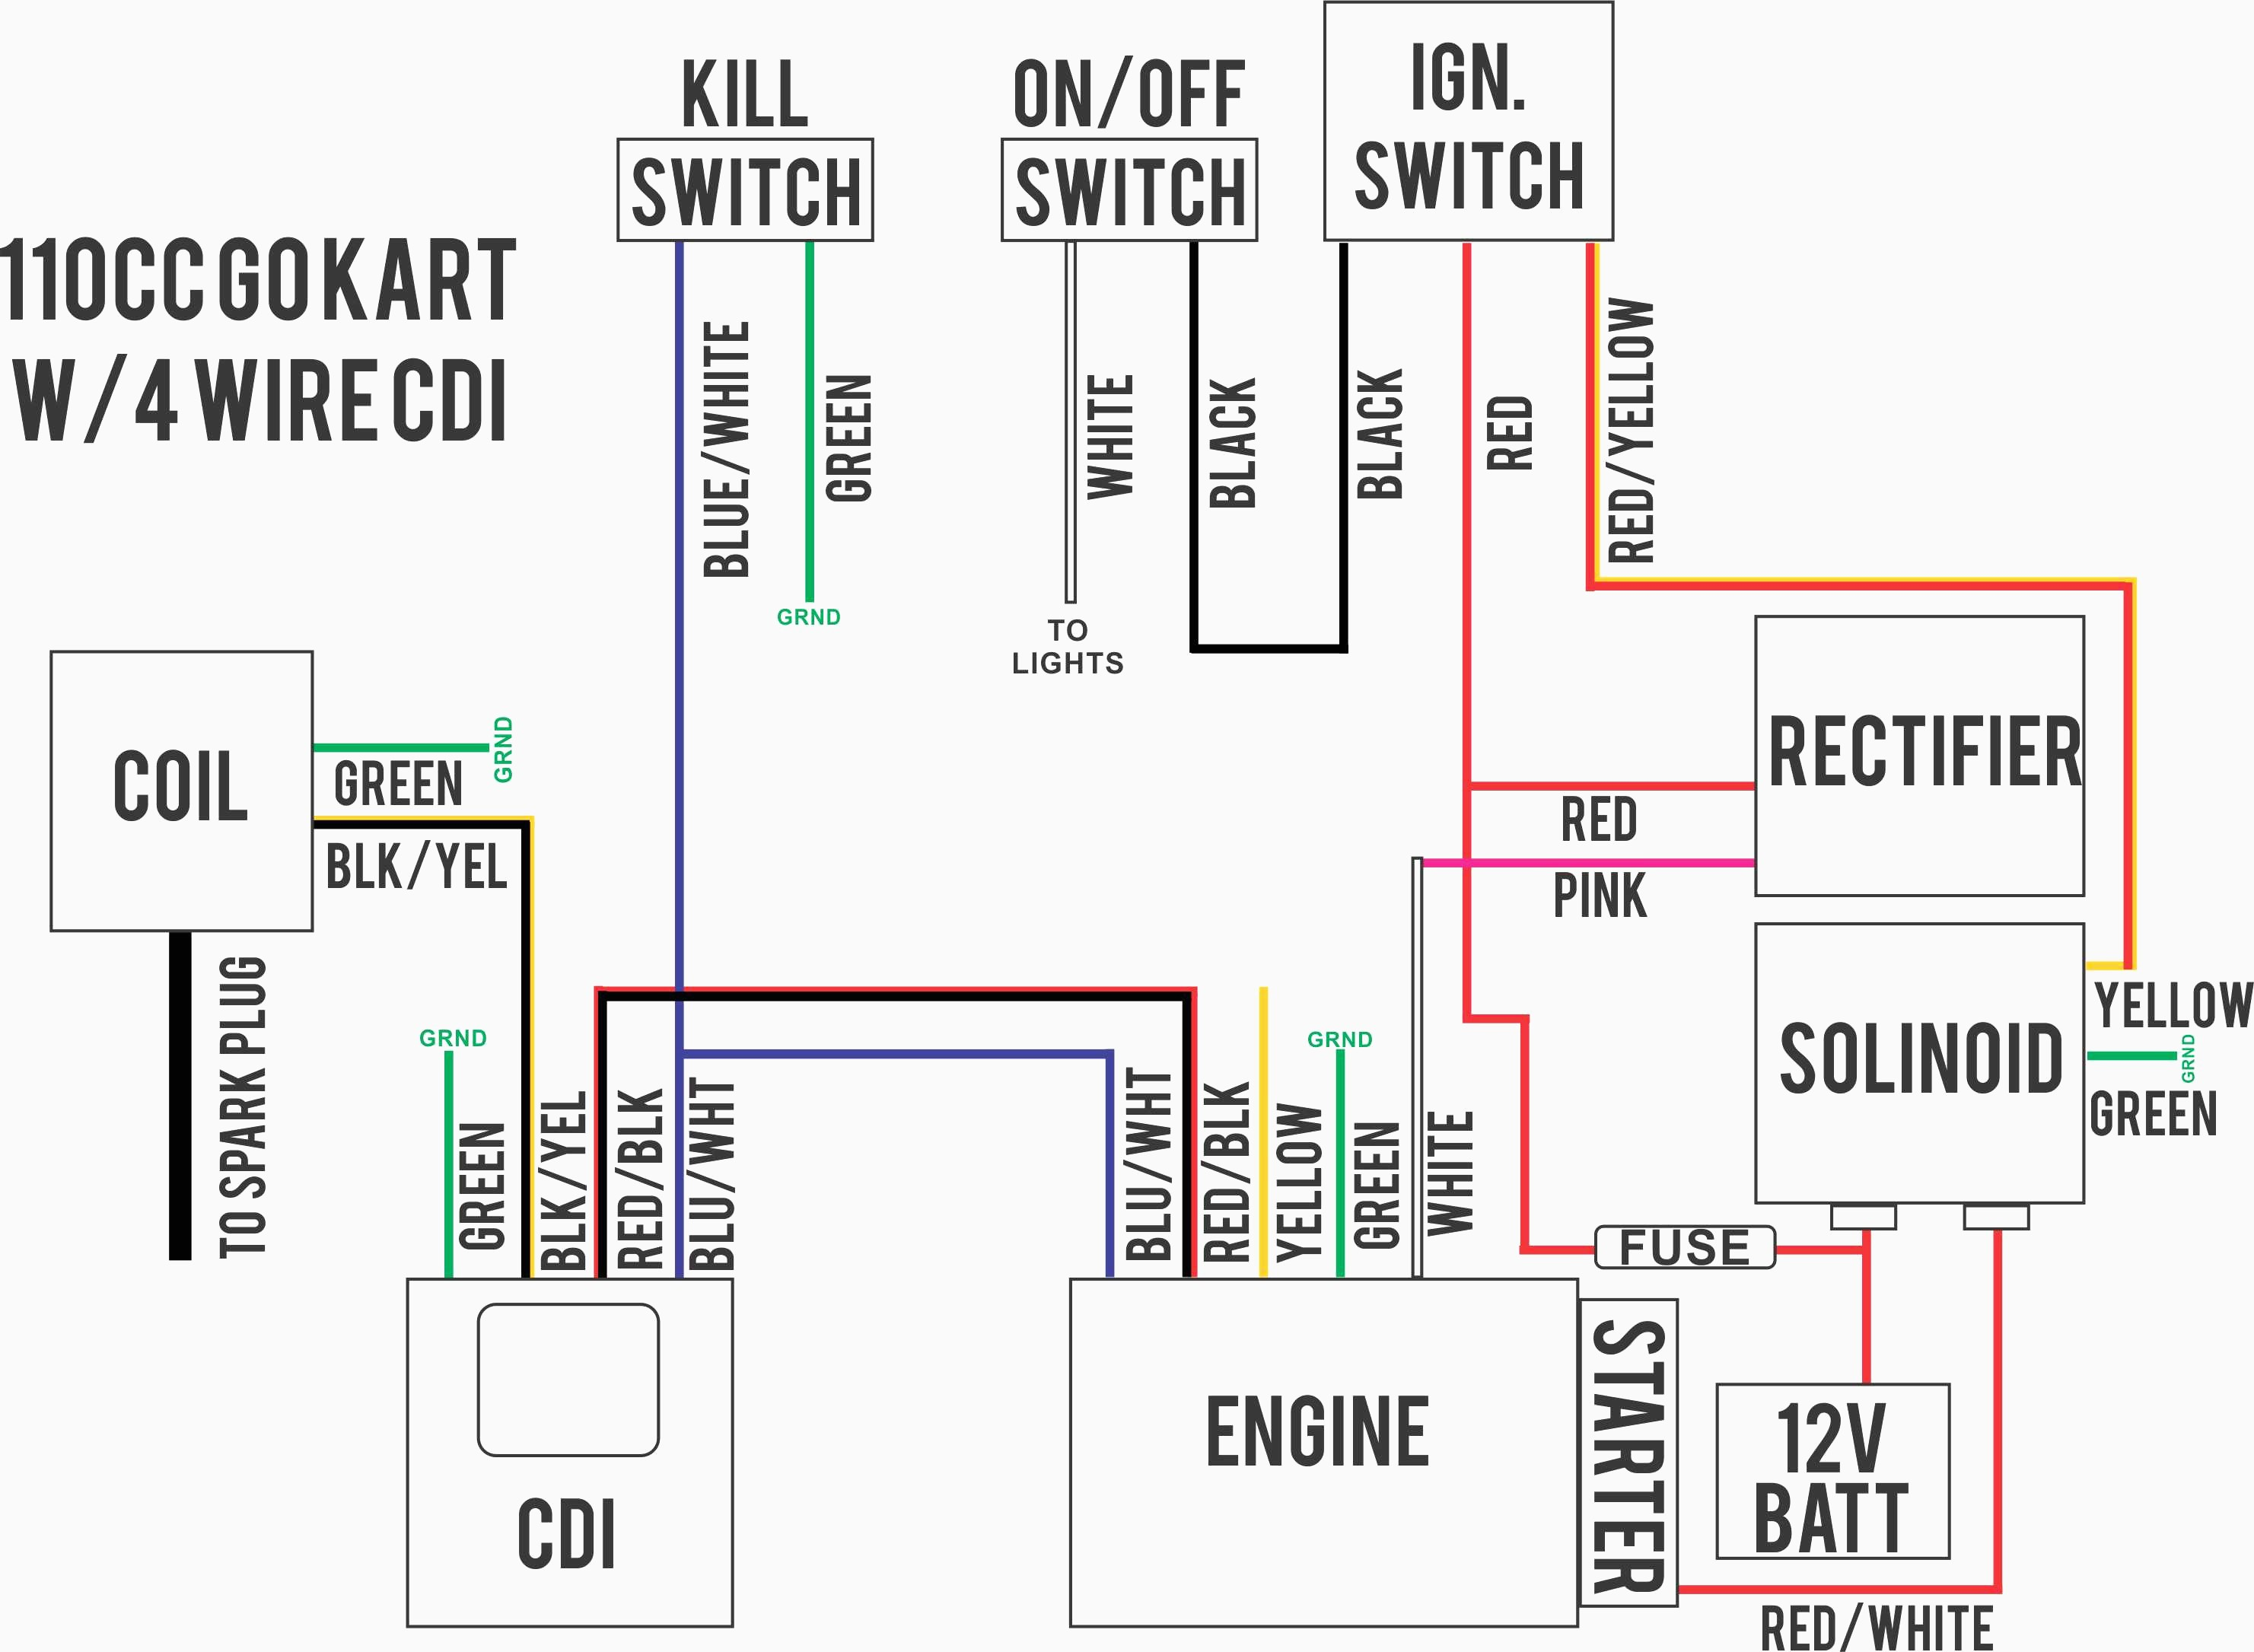 Kenwood Kdc 355u Wiring Diagram | Wiring Liry on